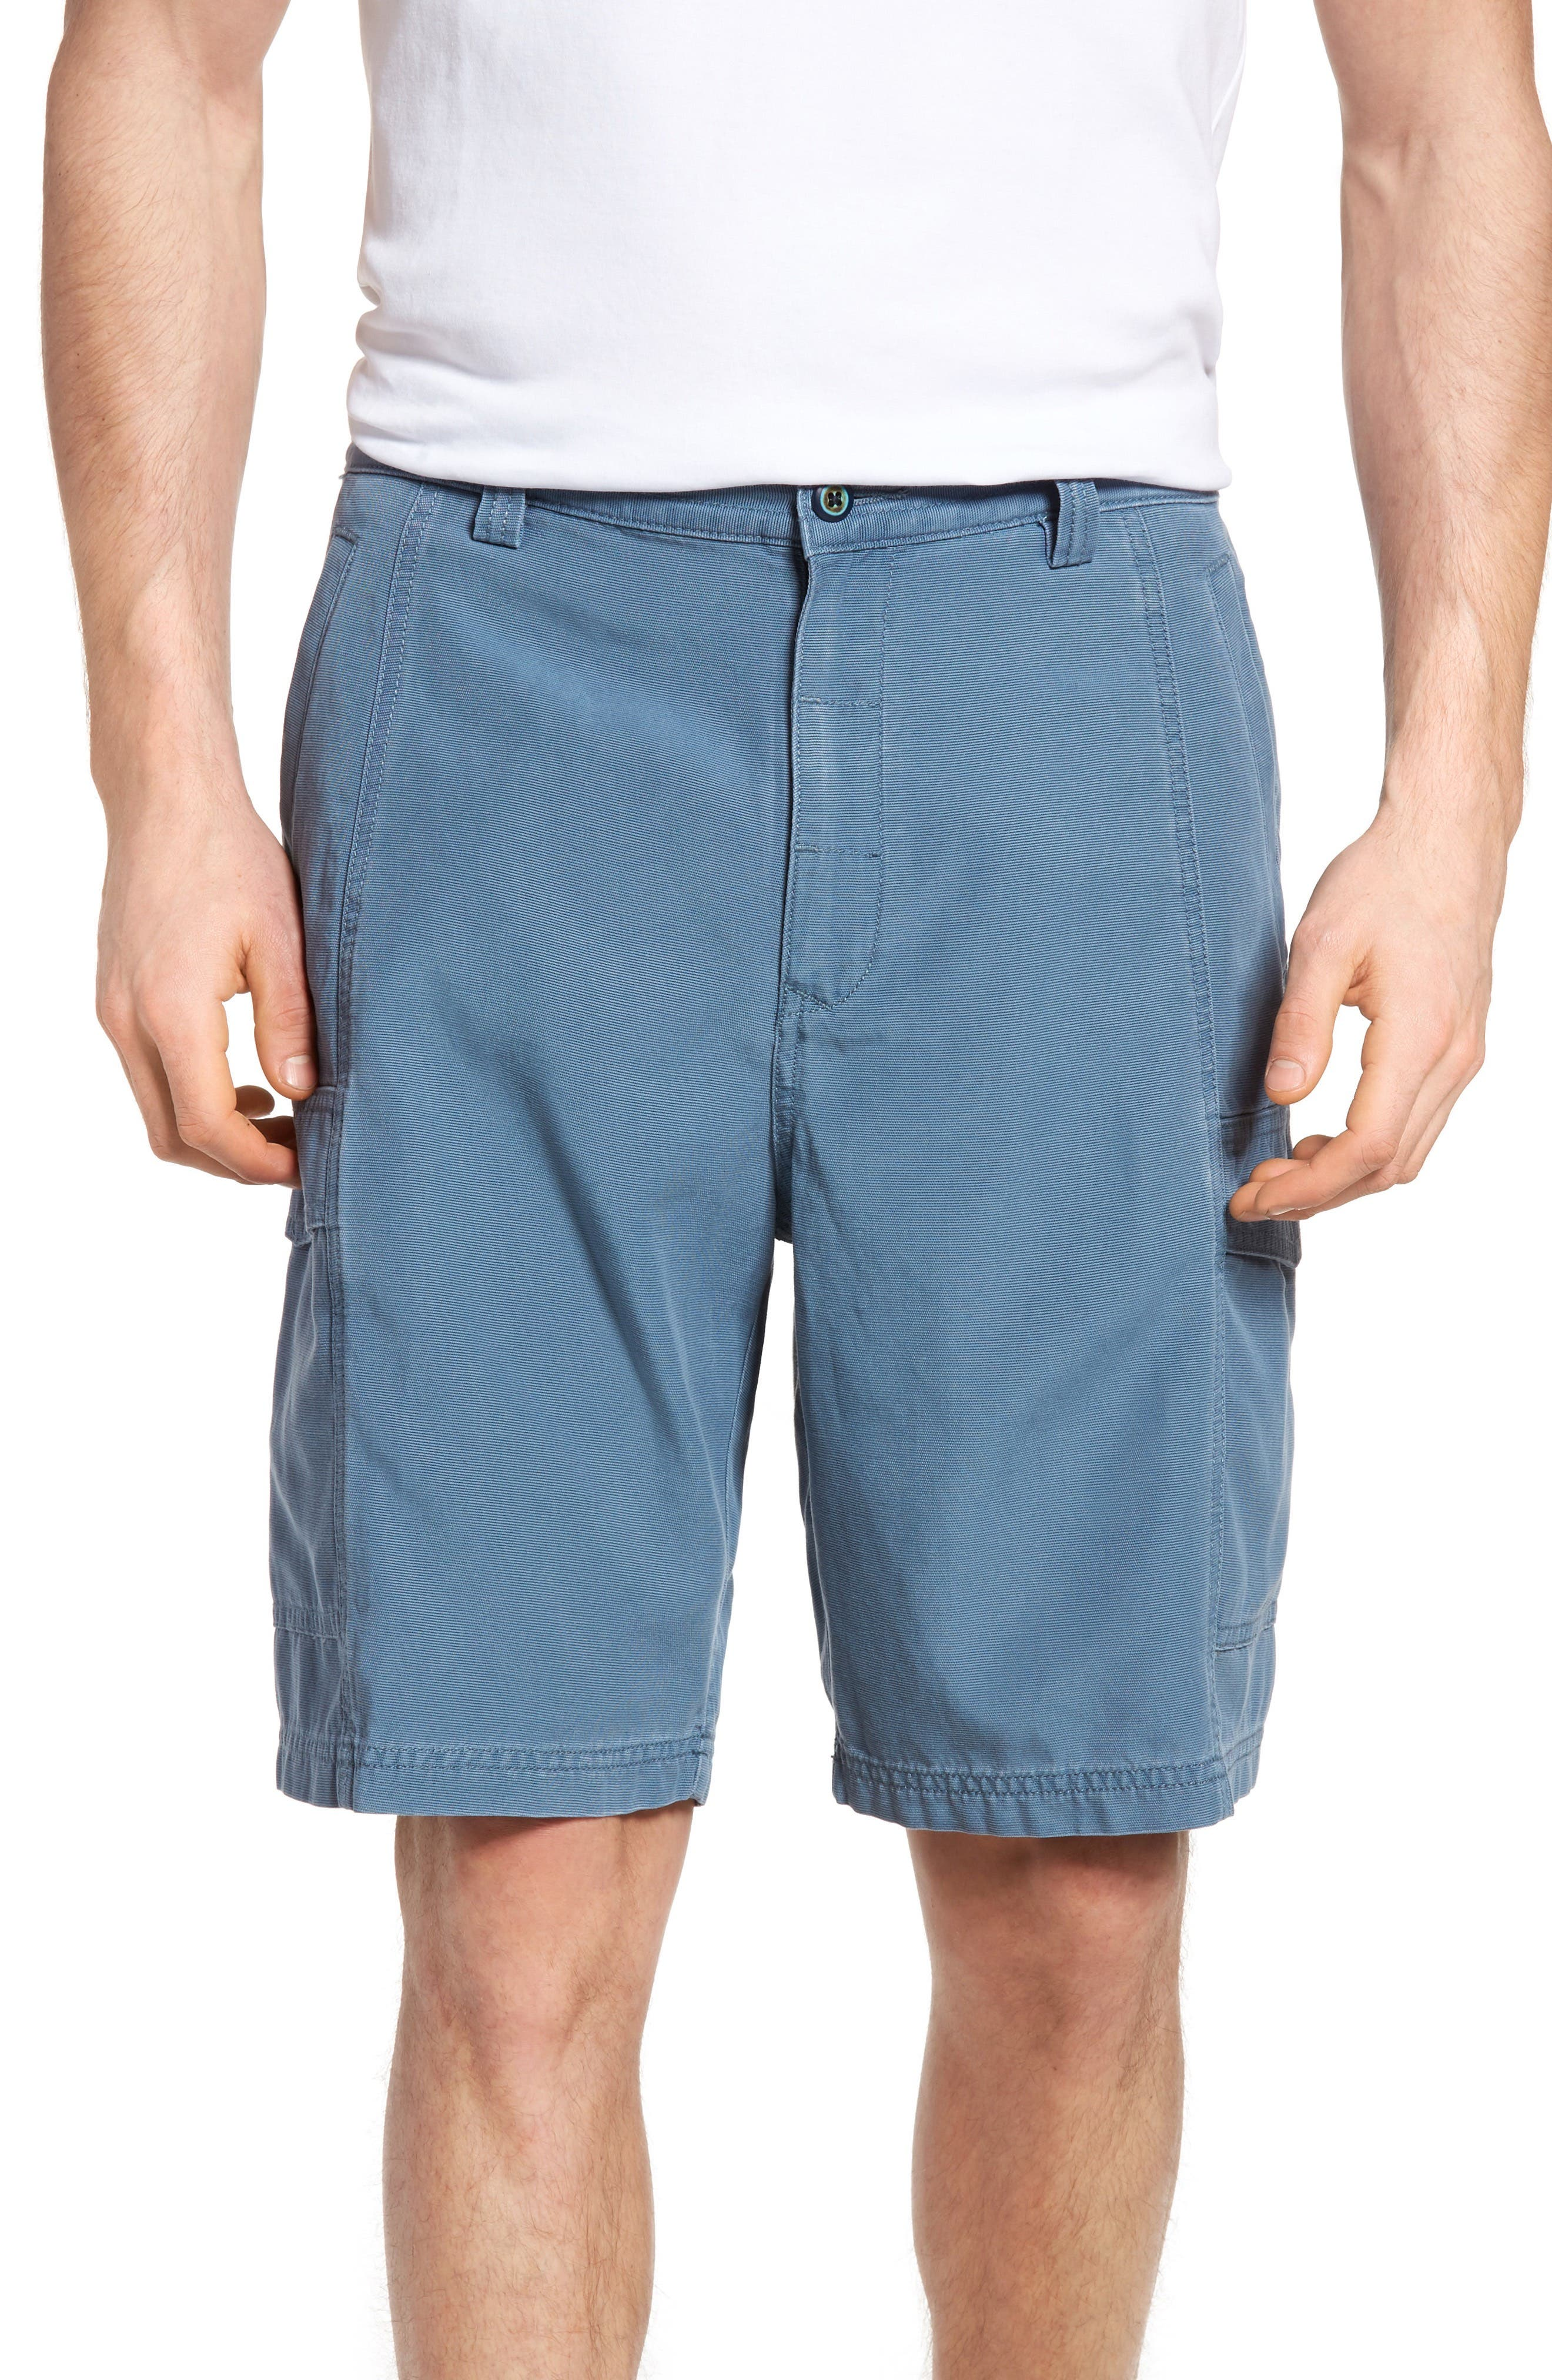 TOMMY BAHAMA Key Grip Relaxed Fit Cargo Shorts